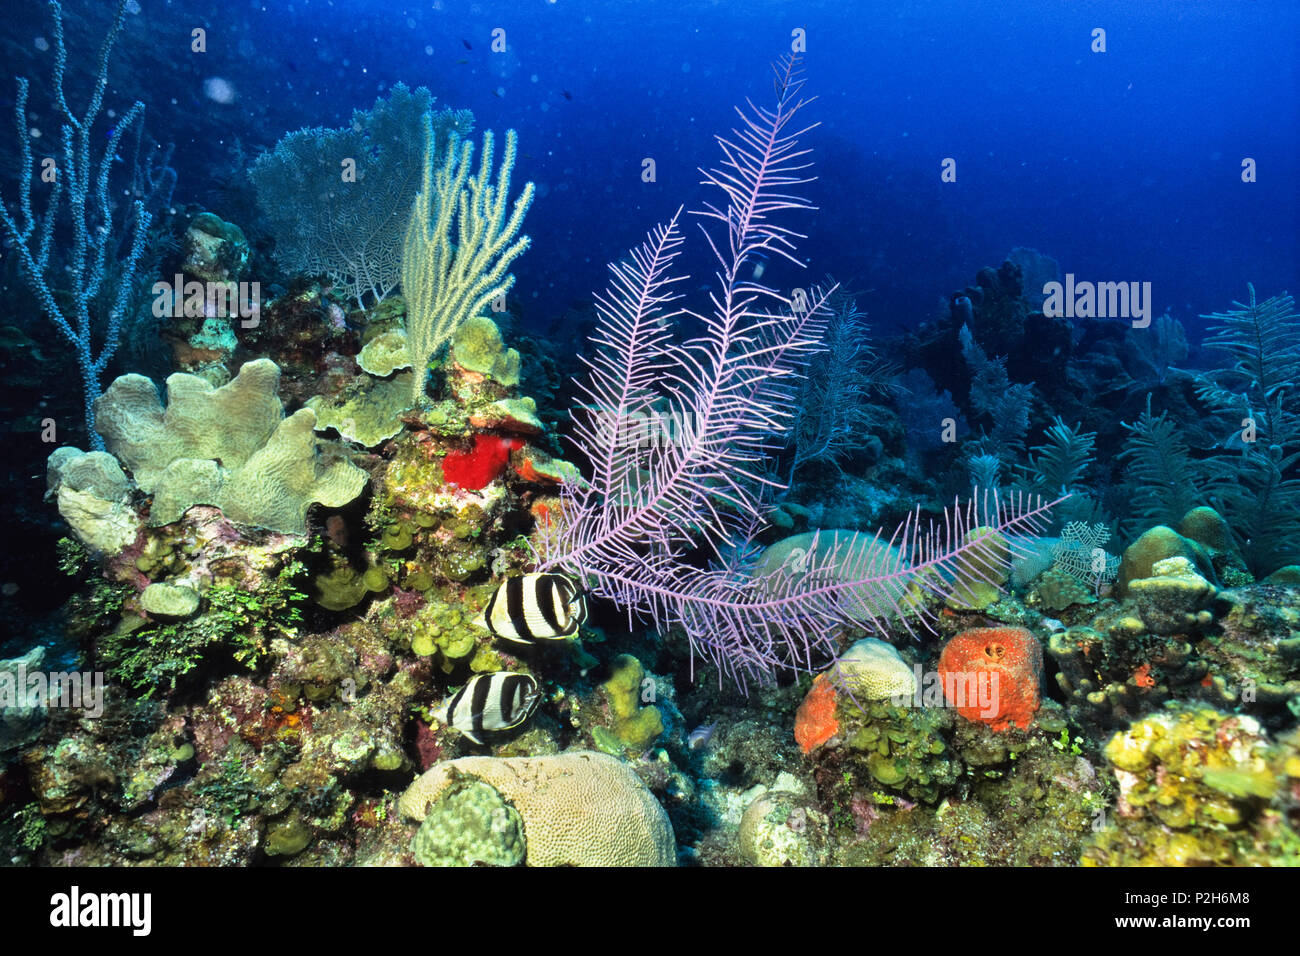 Banded Butterflyfish in Coral Reef, Chaetodon striatus, Honduras, Caribbean, South America - Stock Image